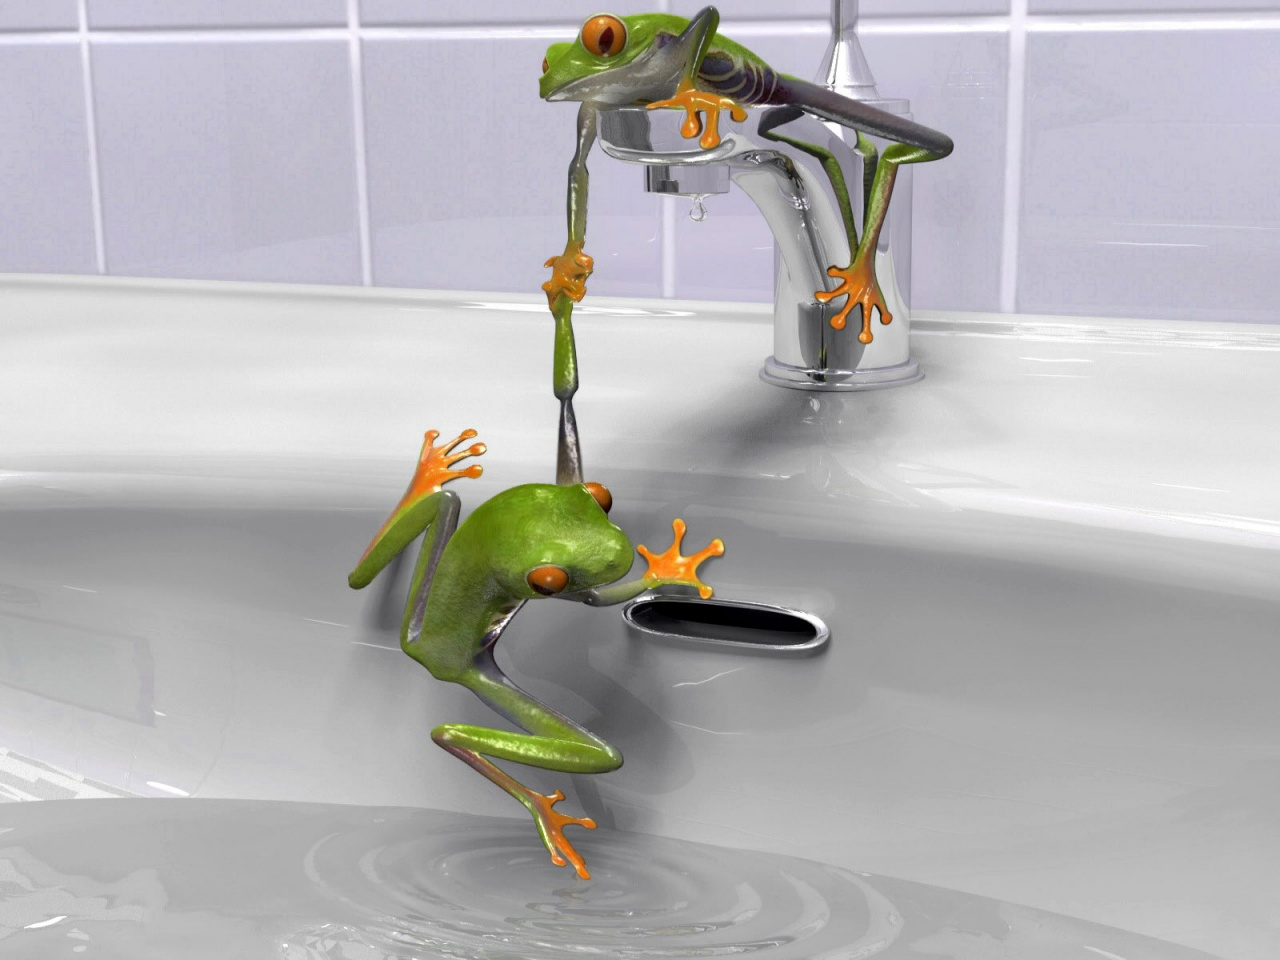 1280x720 Frogs in the sink